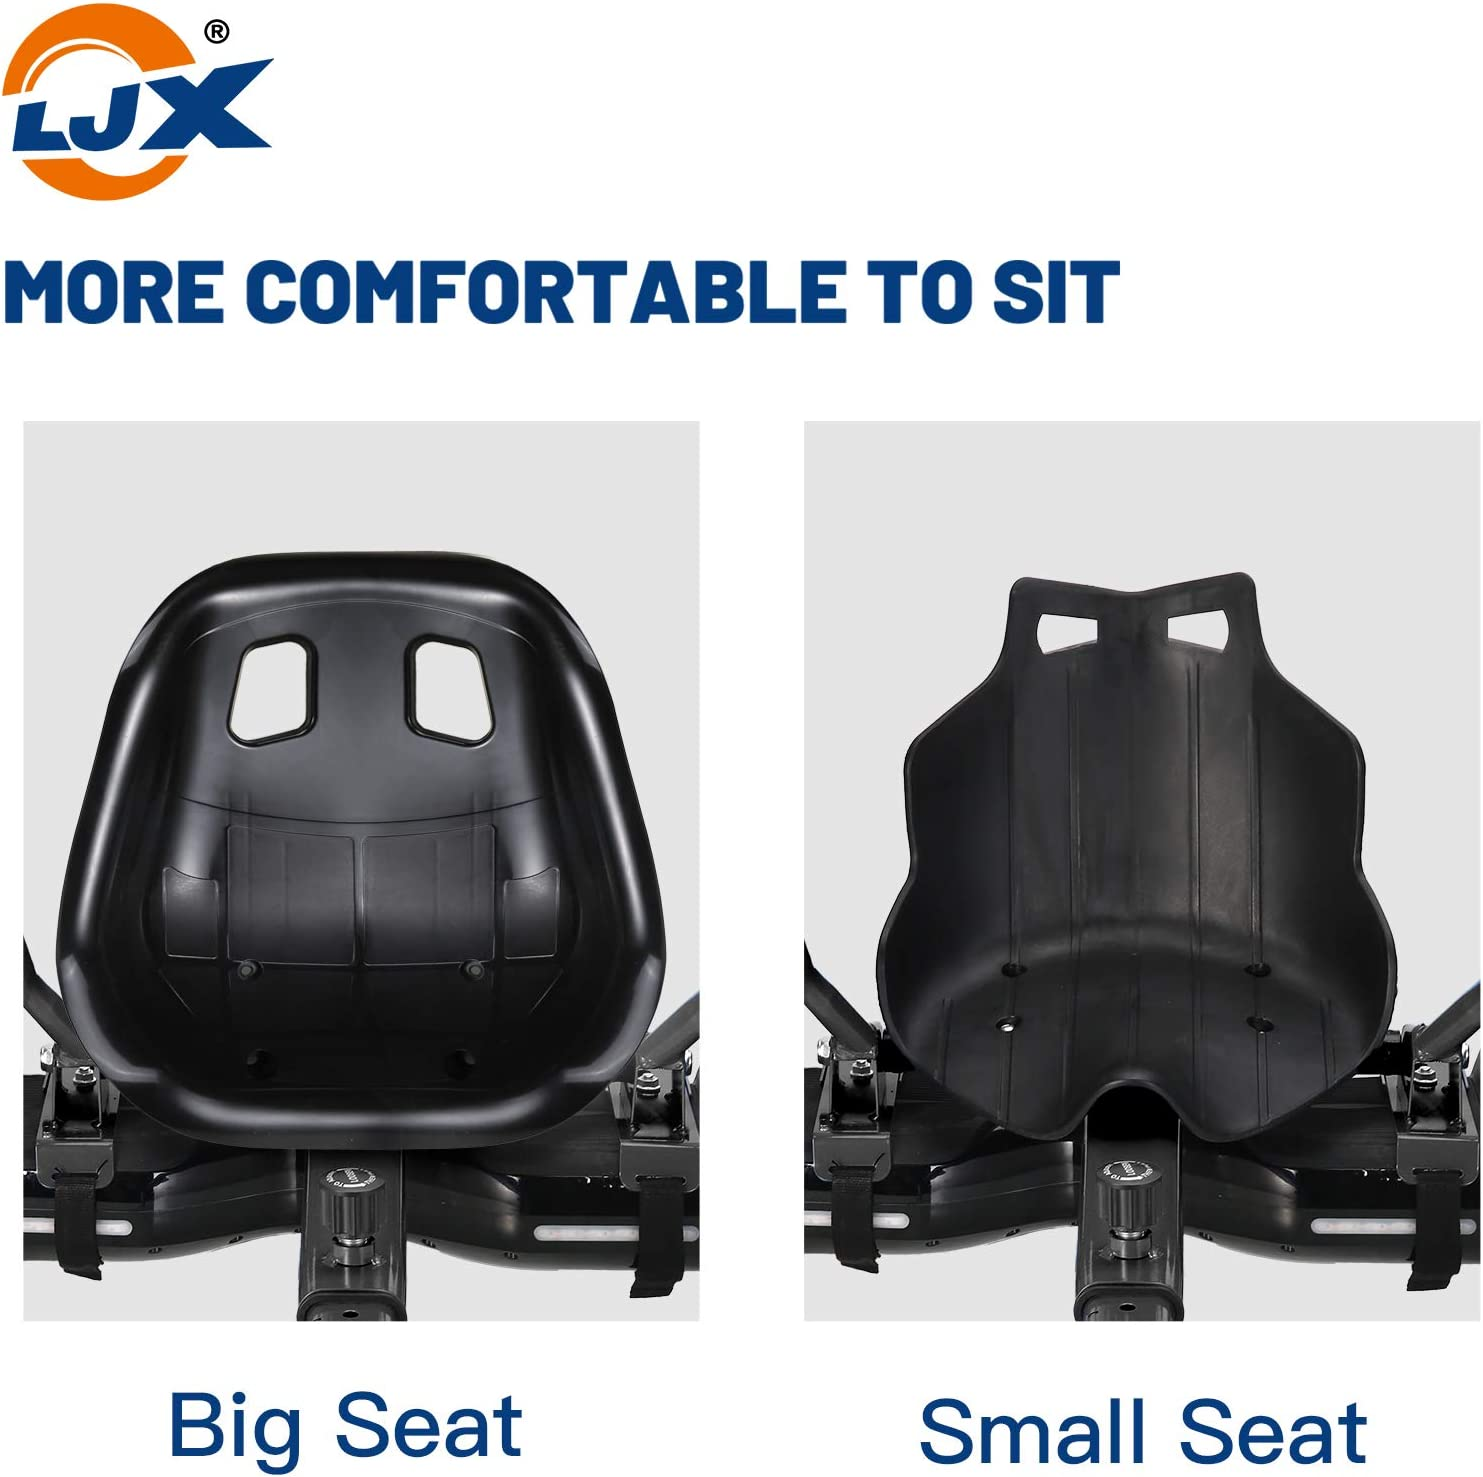 """Wider Seat LJX Hoverboard Seat Attachment Suitable for All Ages Hoverboard Accessories for 6.5/"""" 8/"""" 10/"""" Hoverboard Go Kart"""